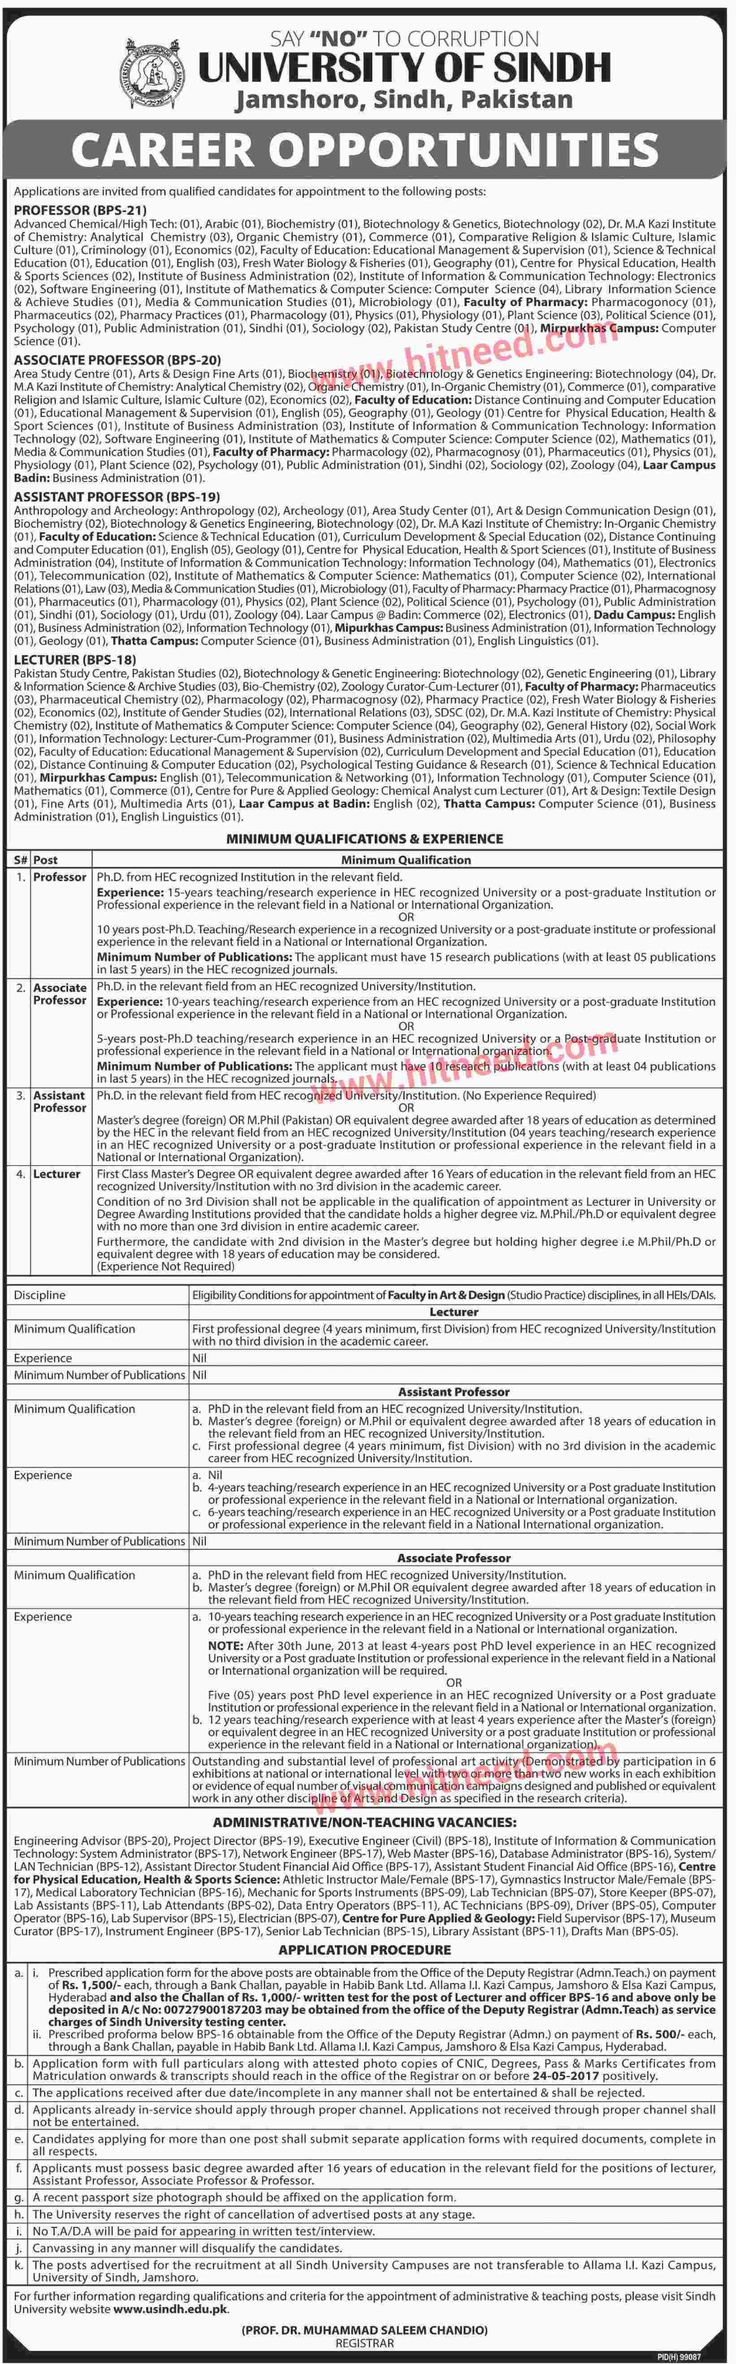 Sindh University, Jamshoro Jobs Administrative, Teaching and Non Teaching Jobs Sindh University of Jamshoro announced jobs for various teaching, non teaching and administrative vacancies as follows:  Teaching Vacancies:   	Professor (BPS-21)  Advanced Chemical/Hiqh Tech:   #AC Technician #Achieve Studies Jobs #Administrative Jobs #Advanced Chemical Jobs #Analytical Chemistry Jobs #Arabic Jobs #Assistant Director #Assistant Professor #Associate Professor #Athletic In